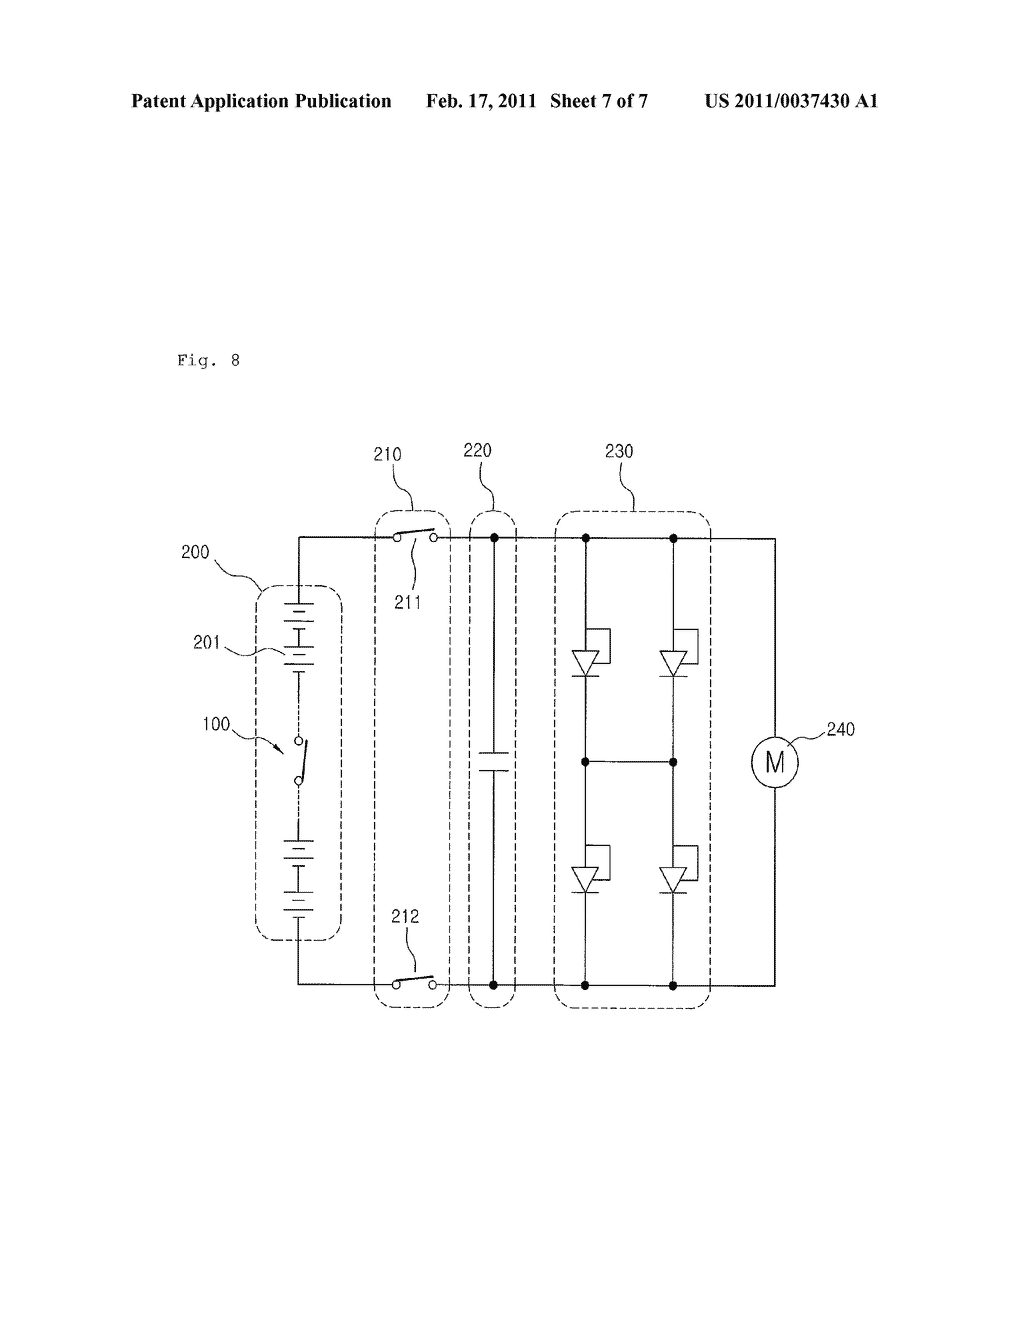 Safety Switch for Secondary Battery for Electric Vehicle and Charging Discharging System for Secondary Battery for Electric Vehicle Using the Same - diagram, schematic, and image 08